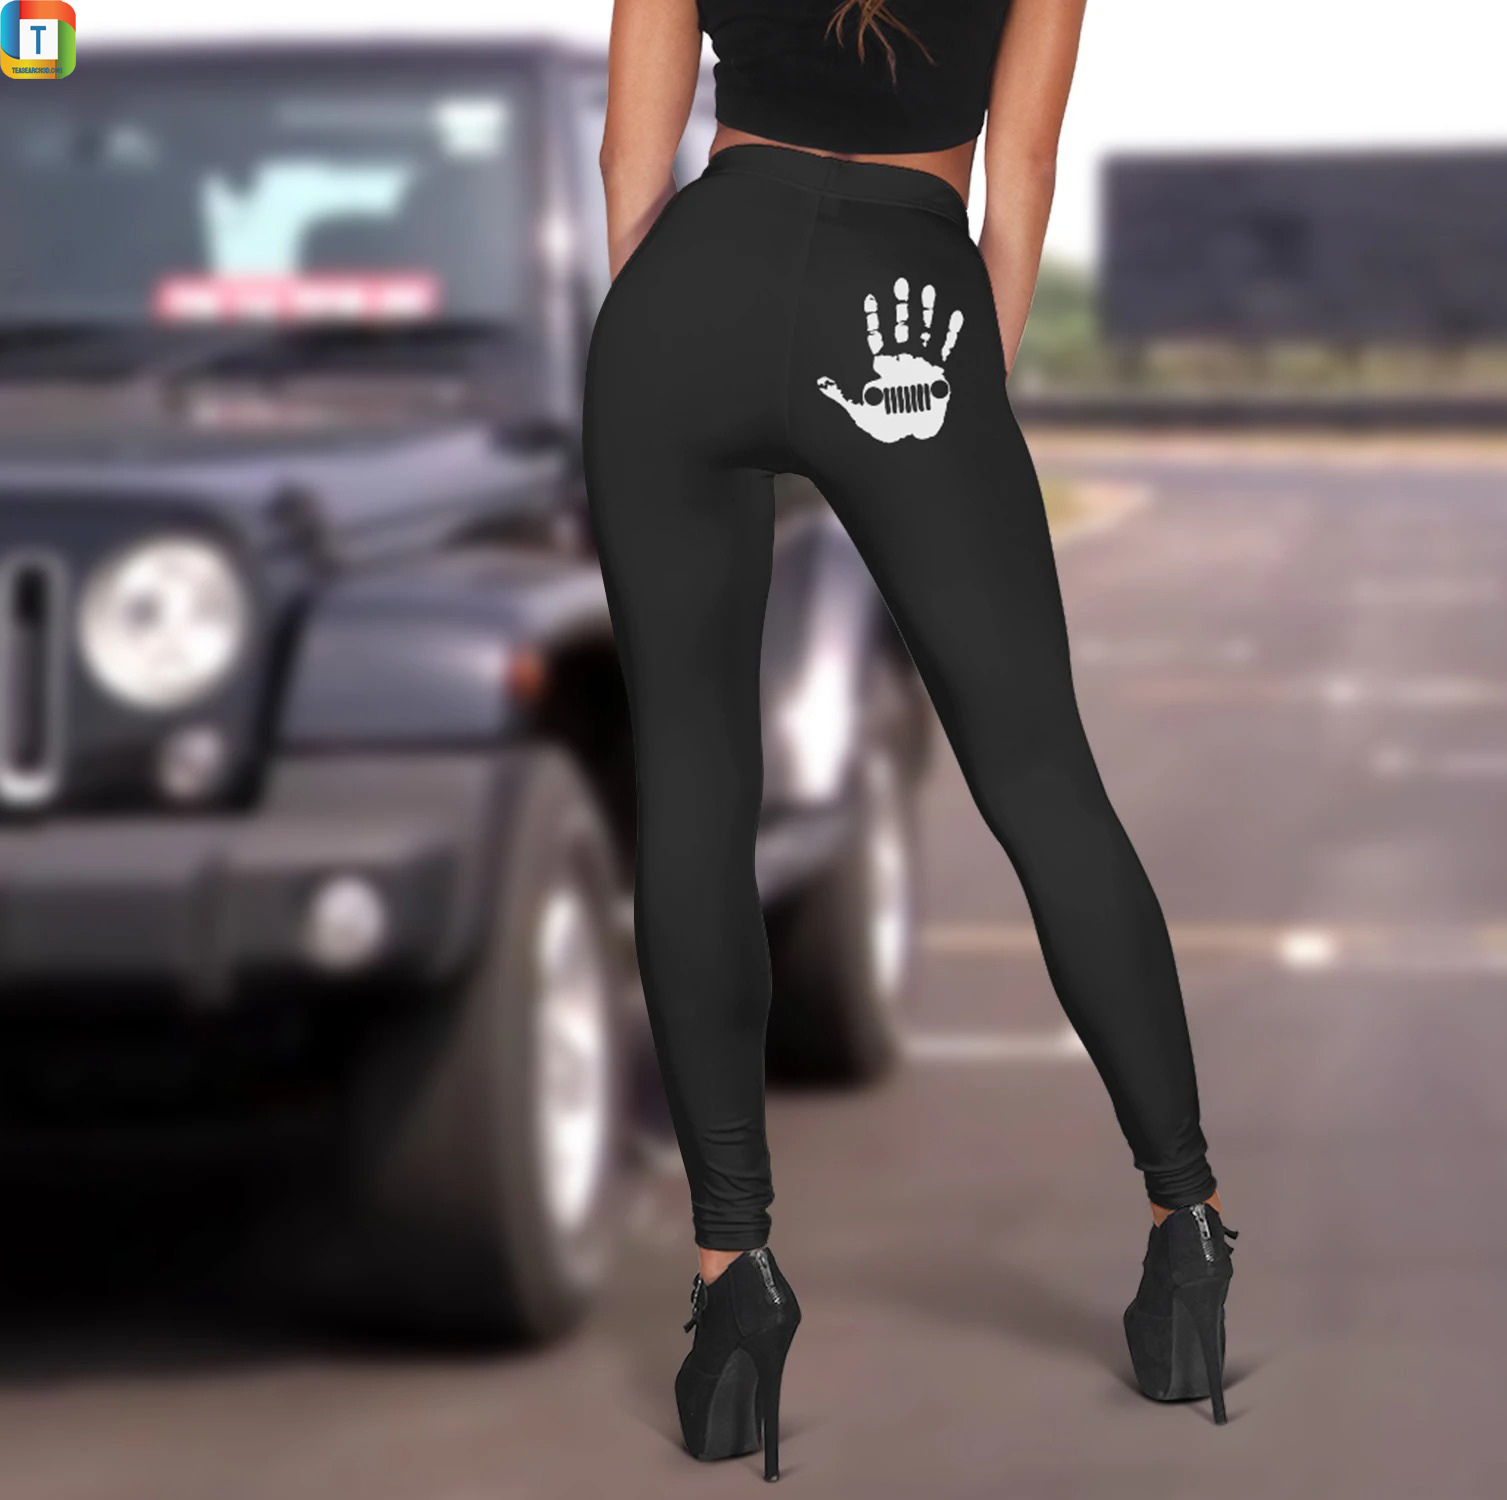 Jeep girl with skeleton hand on a butt leggings 2